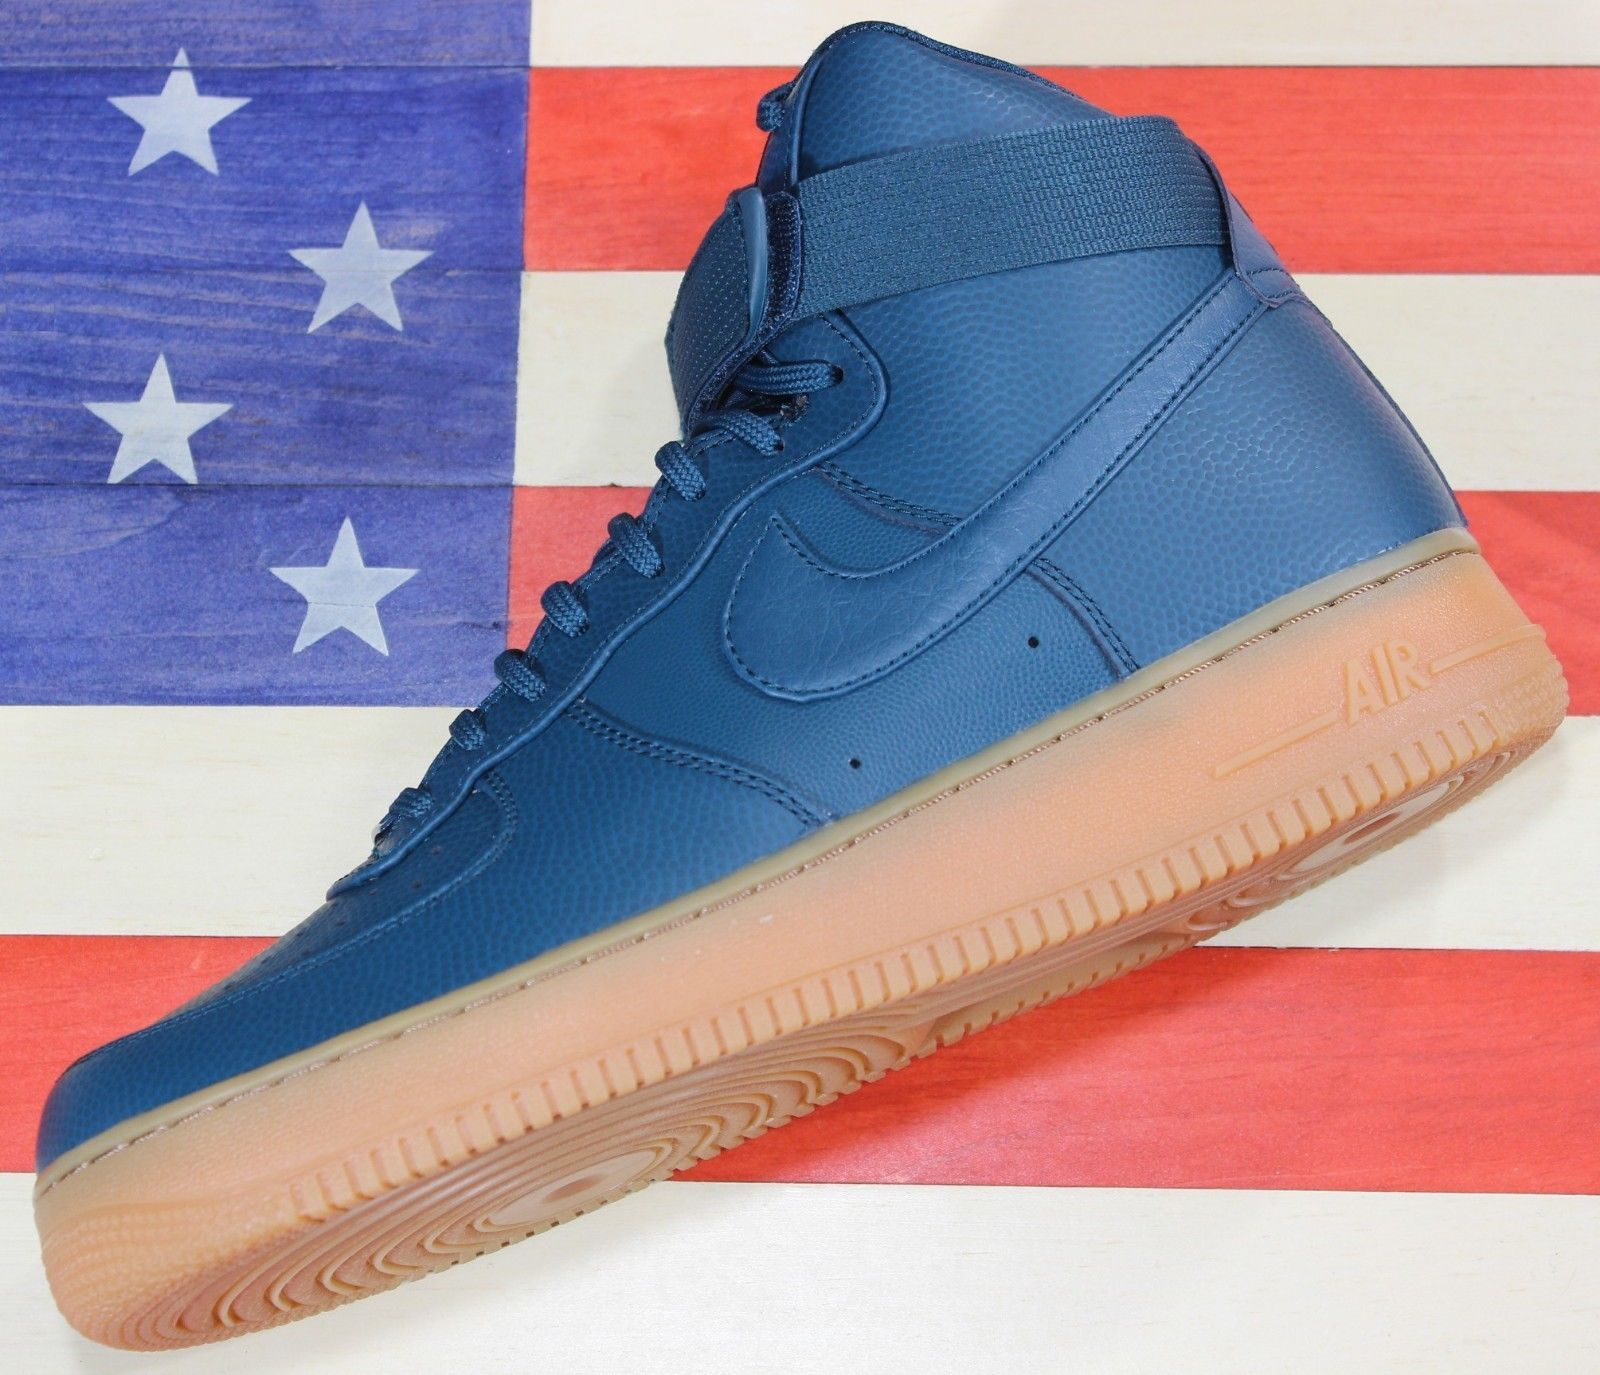 the best attitude 8e440 e063d S l1600. S l1600. Previous. Nike Air Force 1 One High SE Basketball Shoes  Turquoise  860544-300  Women s